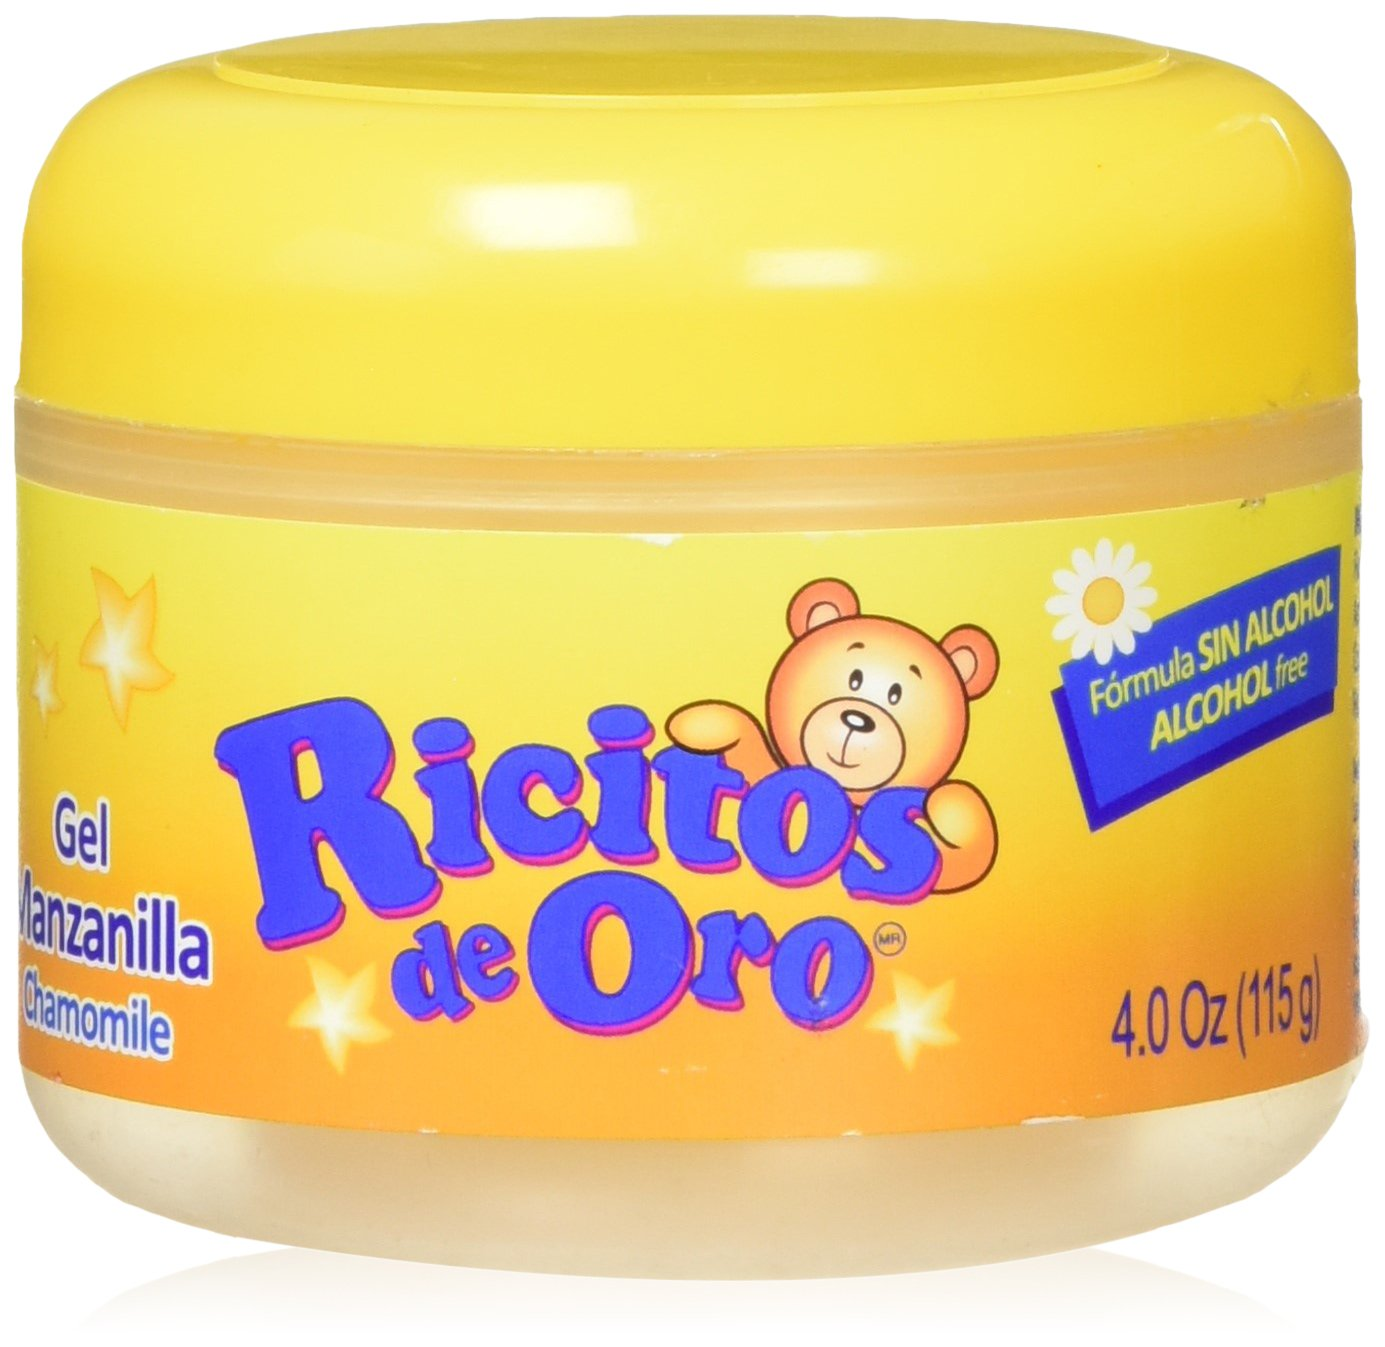 Manzanilla Ricitos de Hair Gel| Alcohol-Free Hair Care Gel for Daily Use,